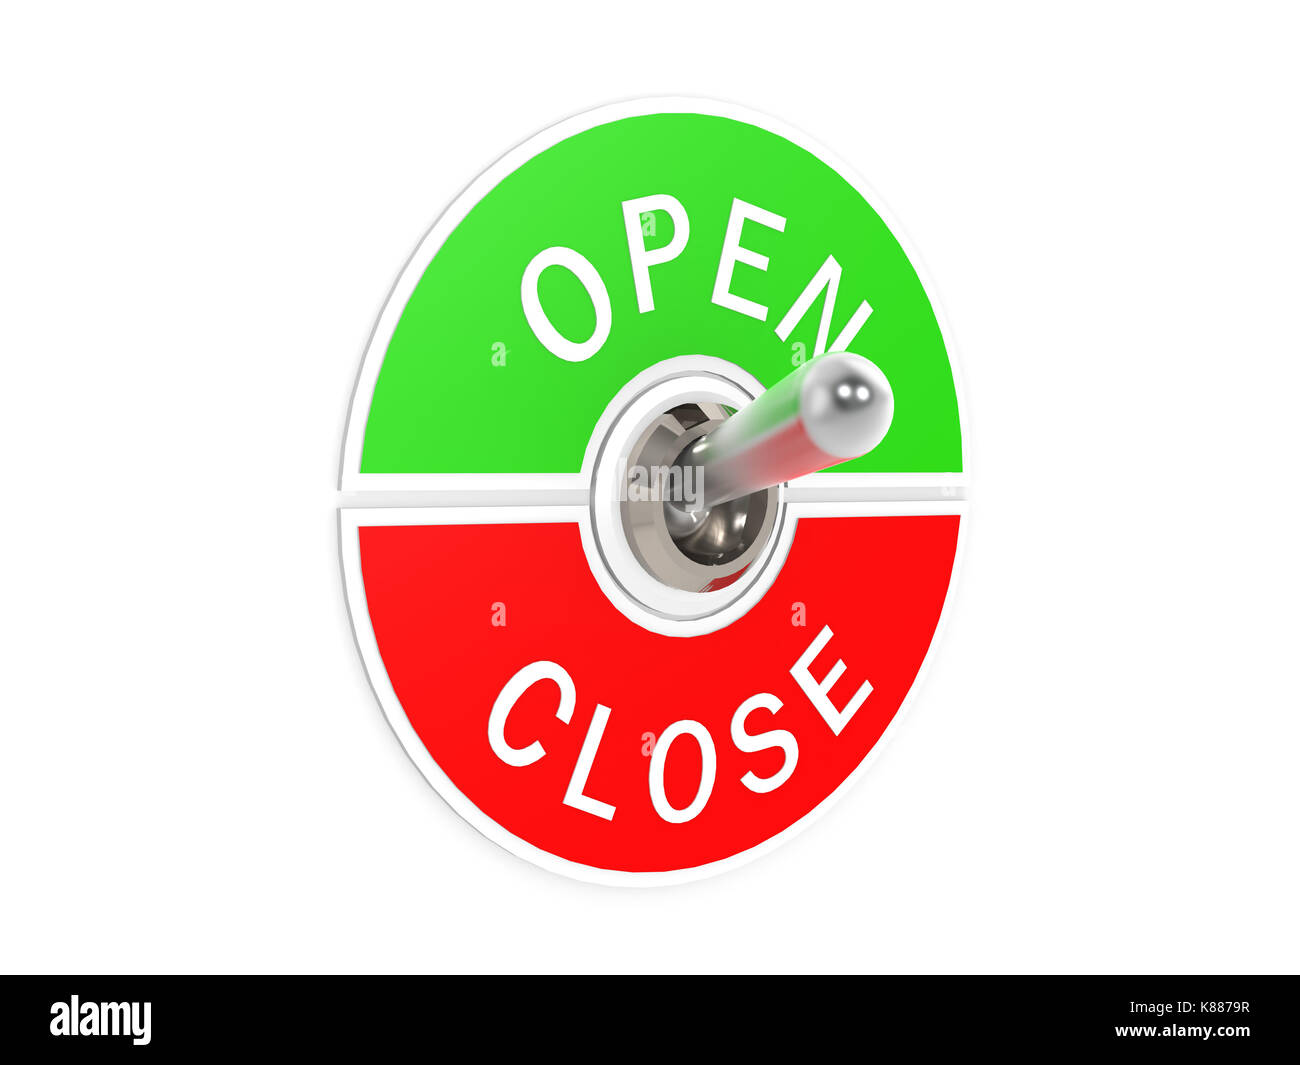 Open close toggle switch - Stock Image